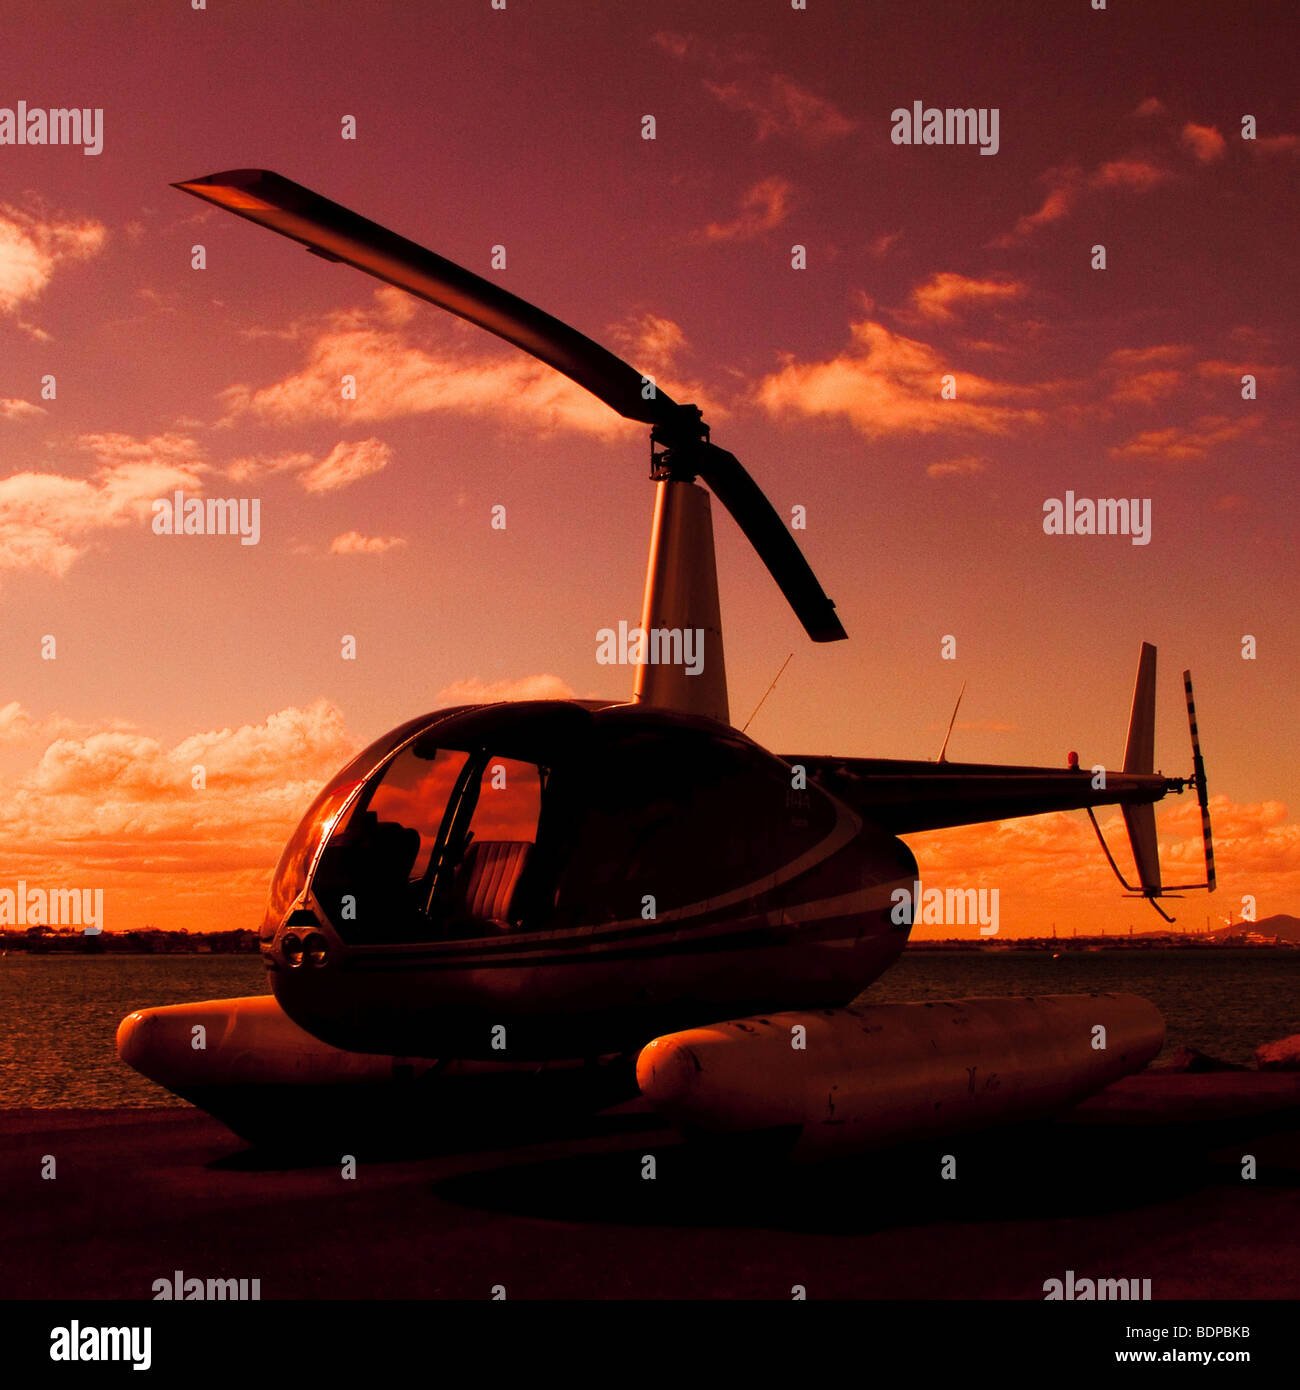 Robinson R44 Astro Helicopter 2006 - Stock Image